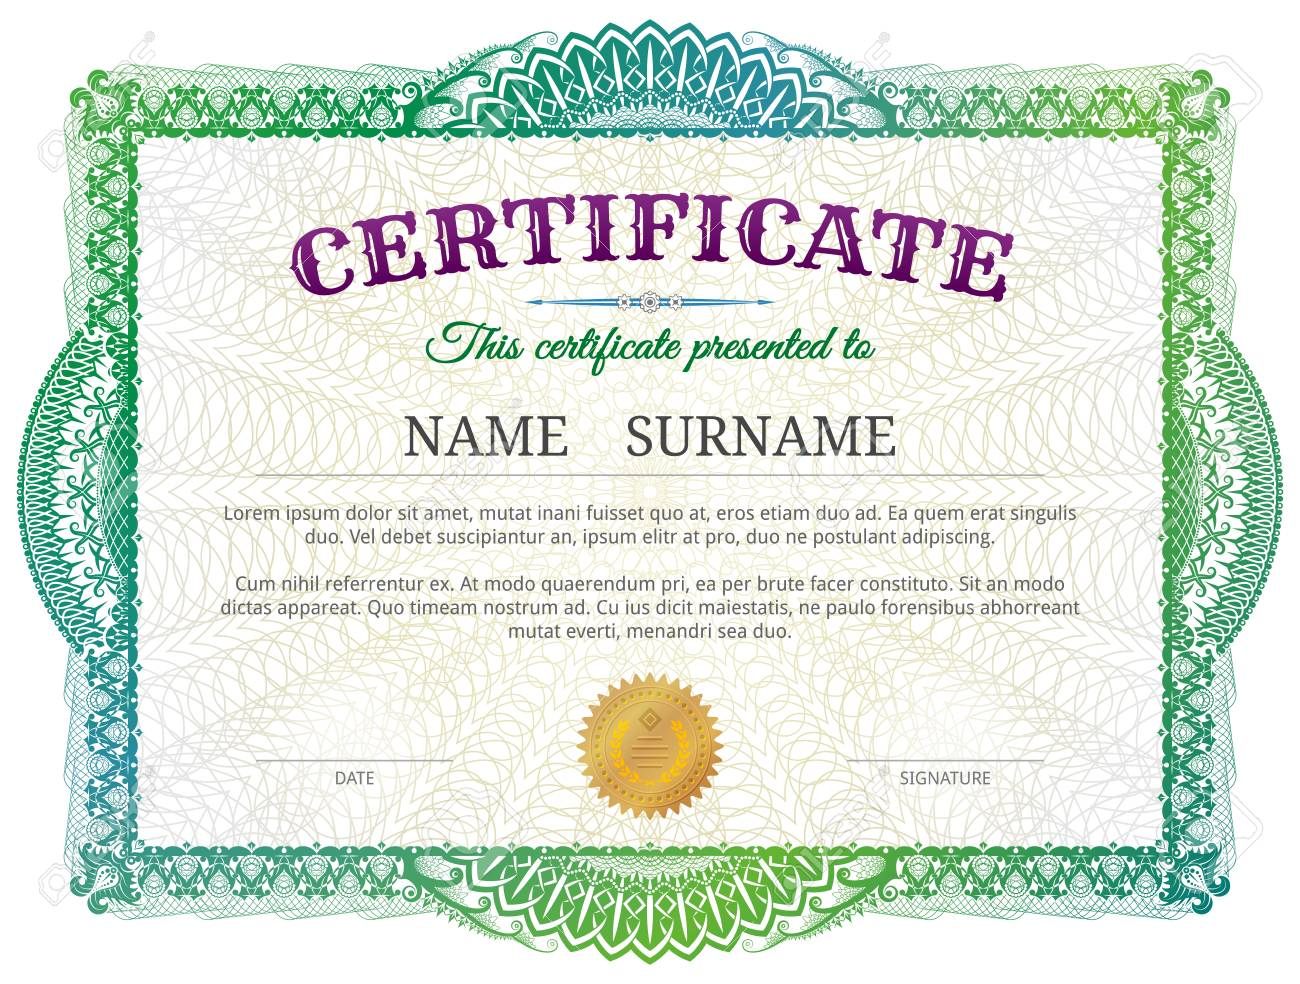 Certificate template with guilloche elements green diploma border certificate template with guilloche elements green diploma border design for personal conferment best vector yadclub Image collections